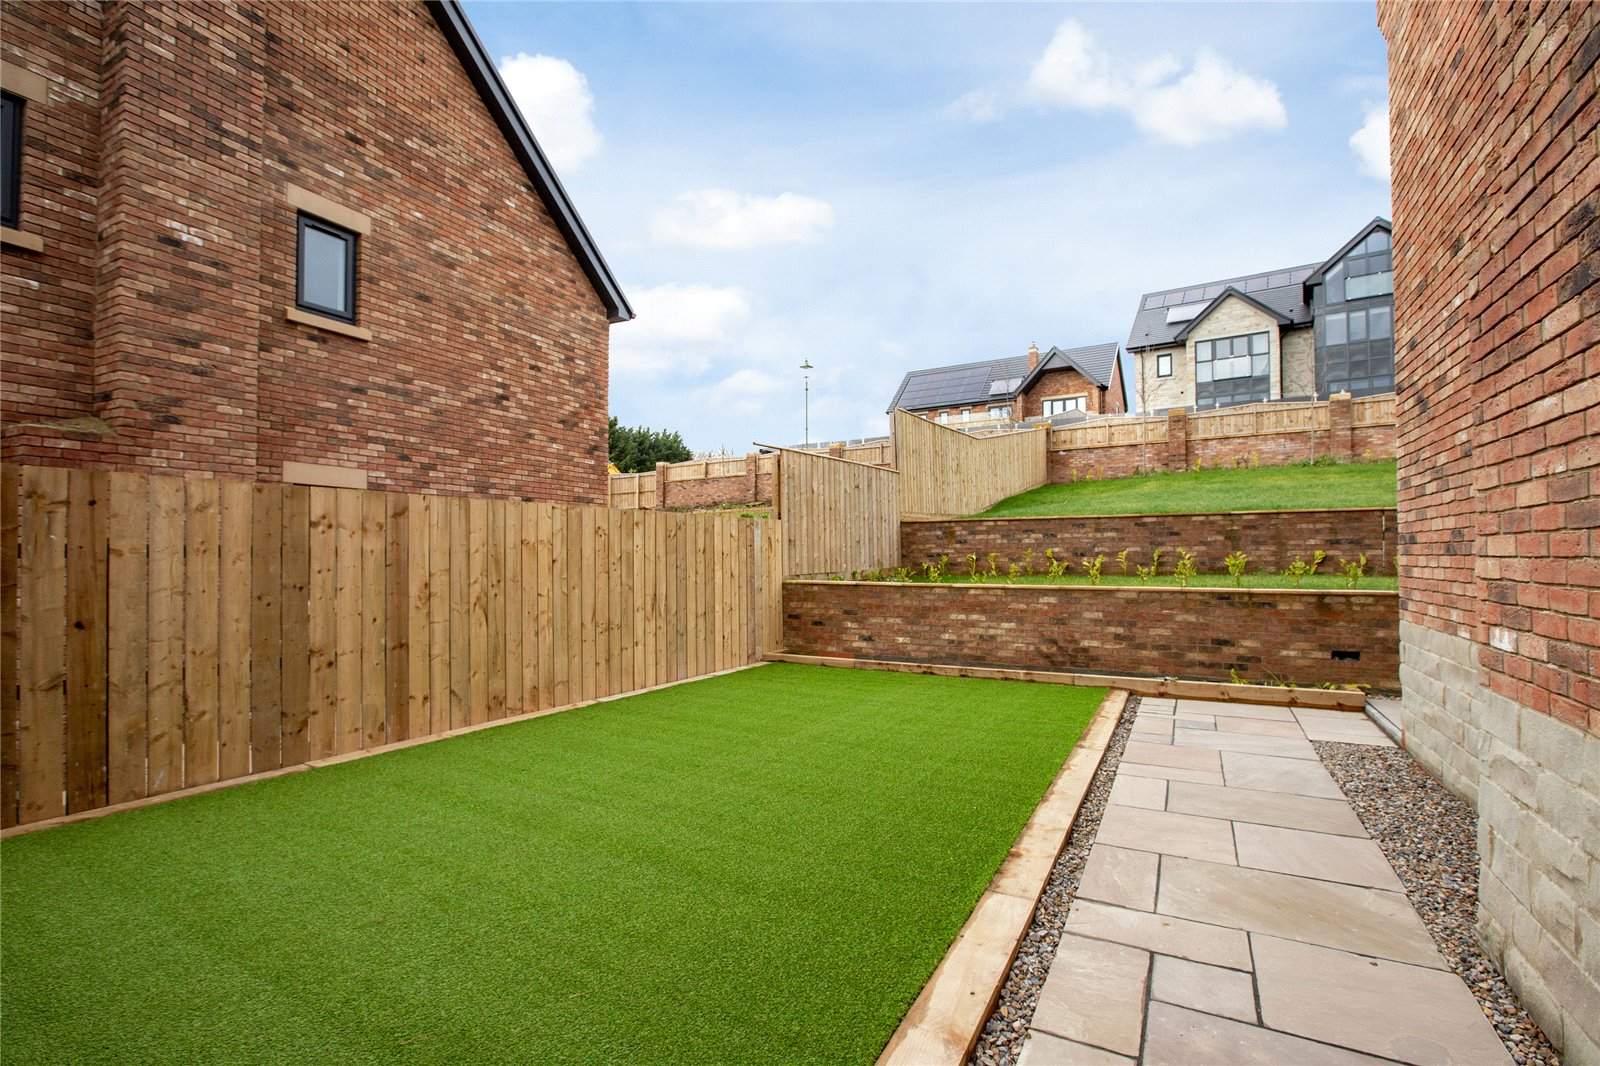 5 bed house for sale in Upsall Grange Gardens, Upsall  - Property Image 19